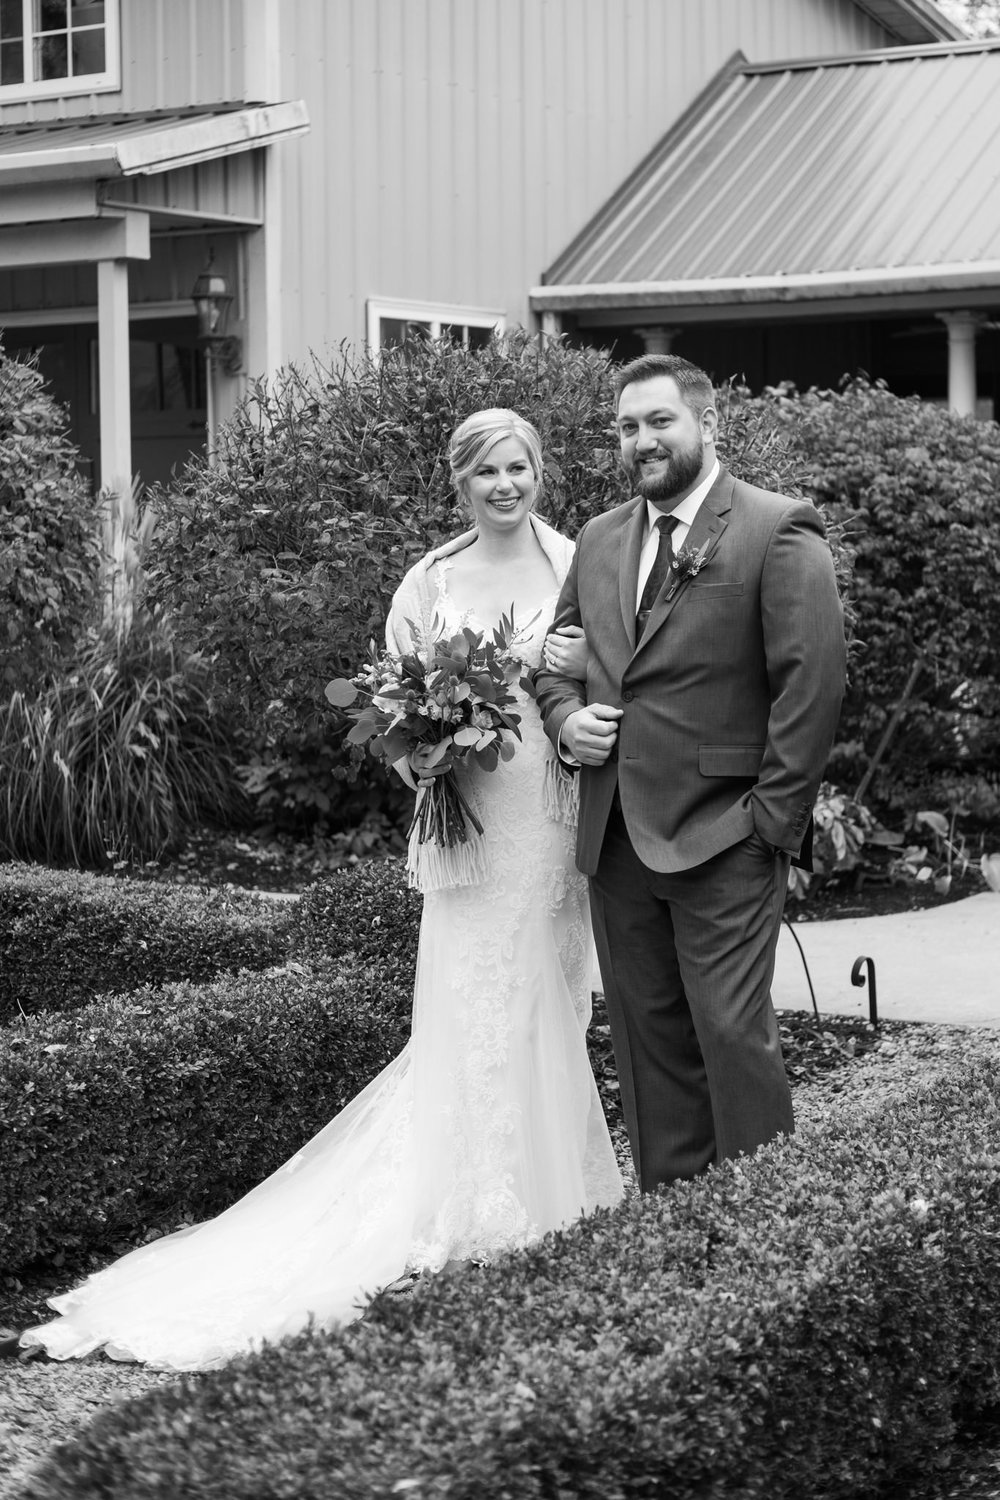 Lauren&Zack_Wedding_Blog_0030.jpg